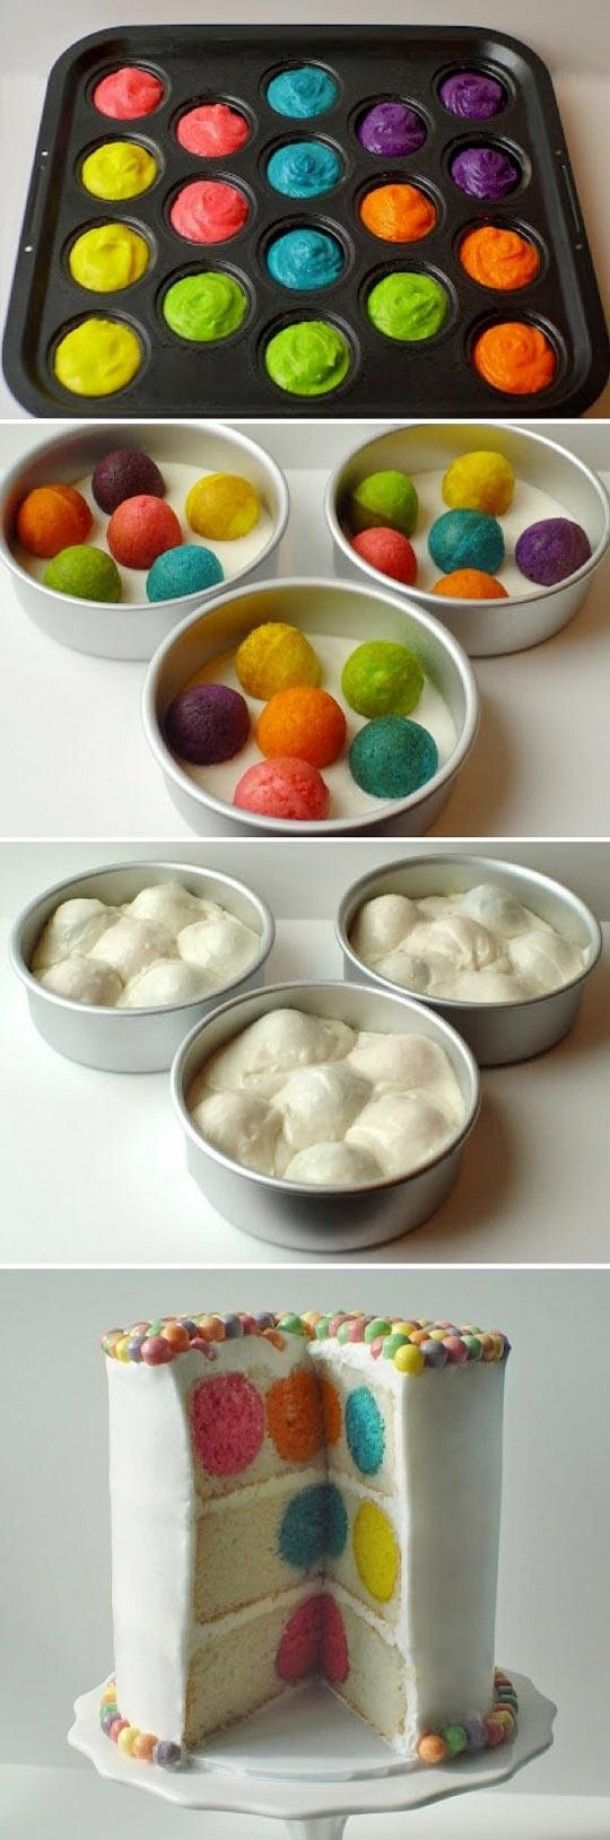 Inspirational dishes | funny to make By kbarinkvanzuidam dutch site ... pictoral on how to make ... the polka dots are balls colored first and then baked inside the cake at the same time